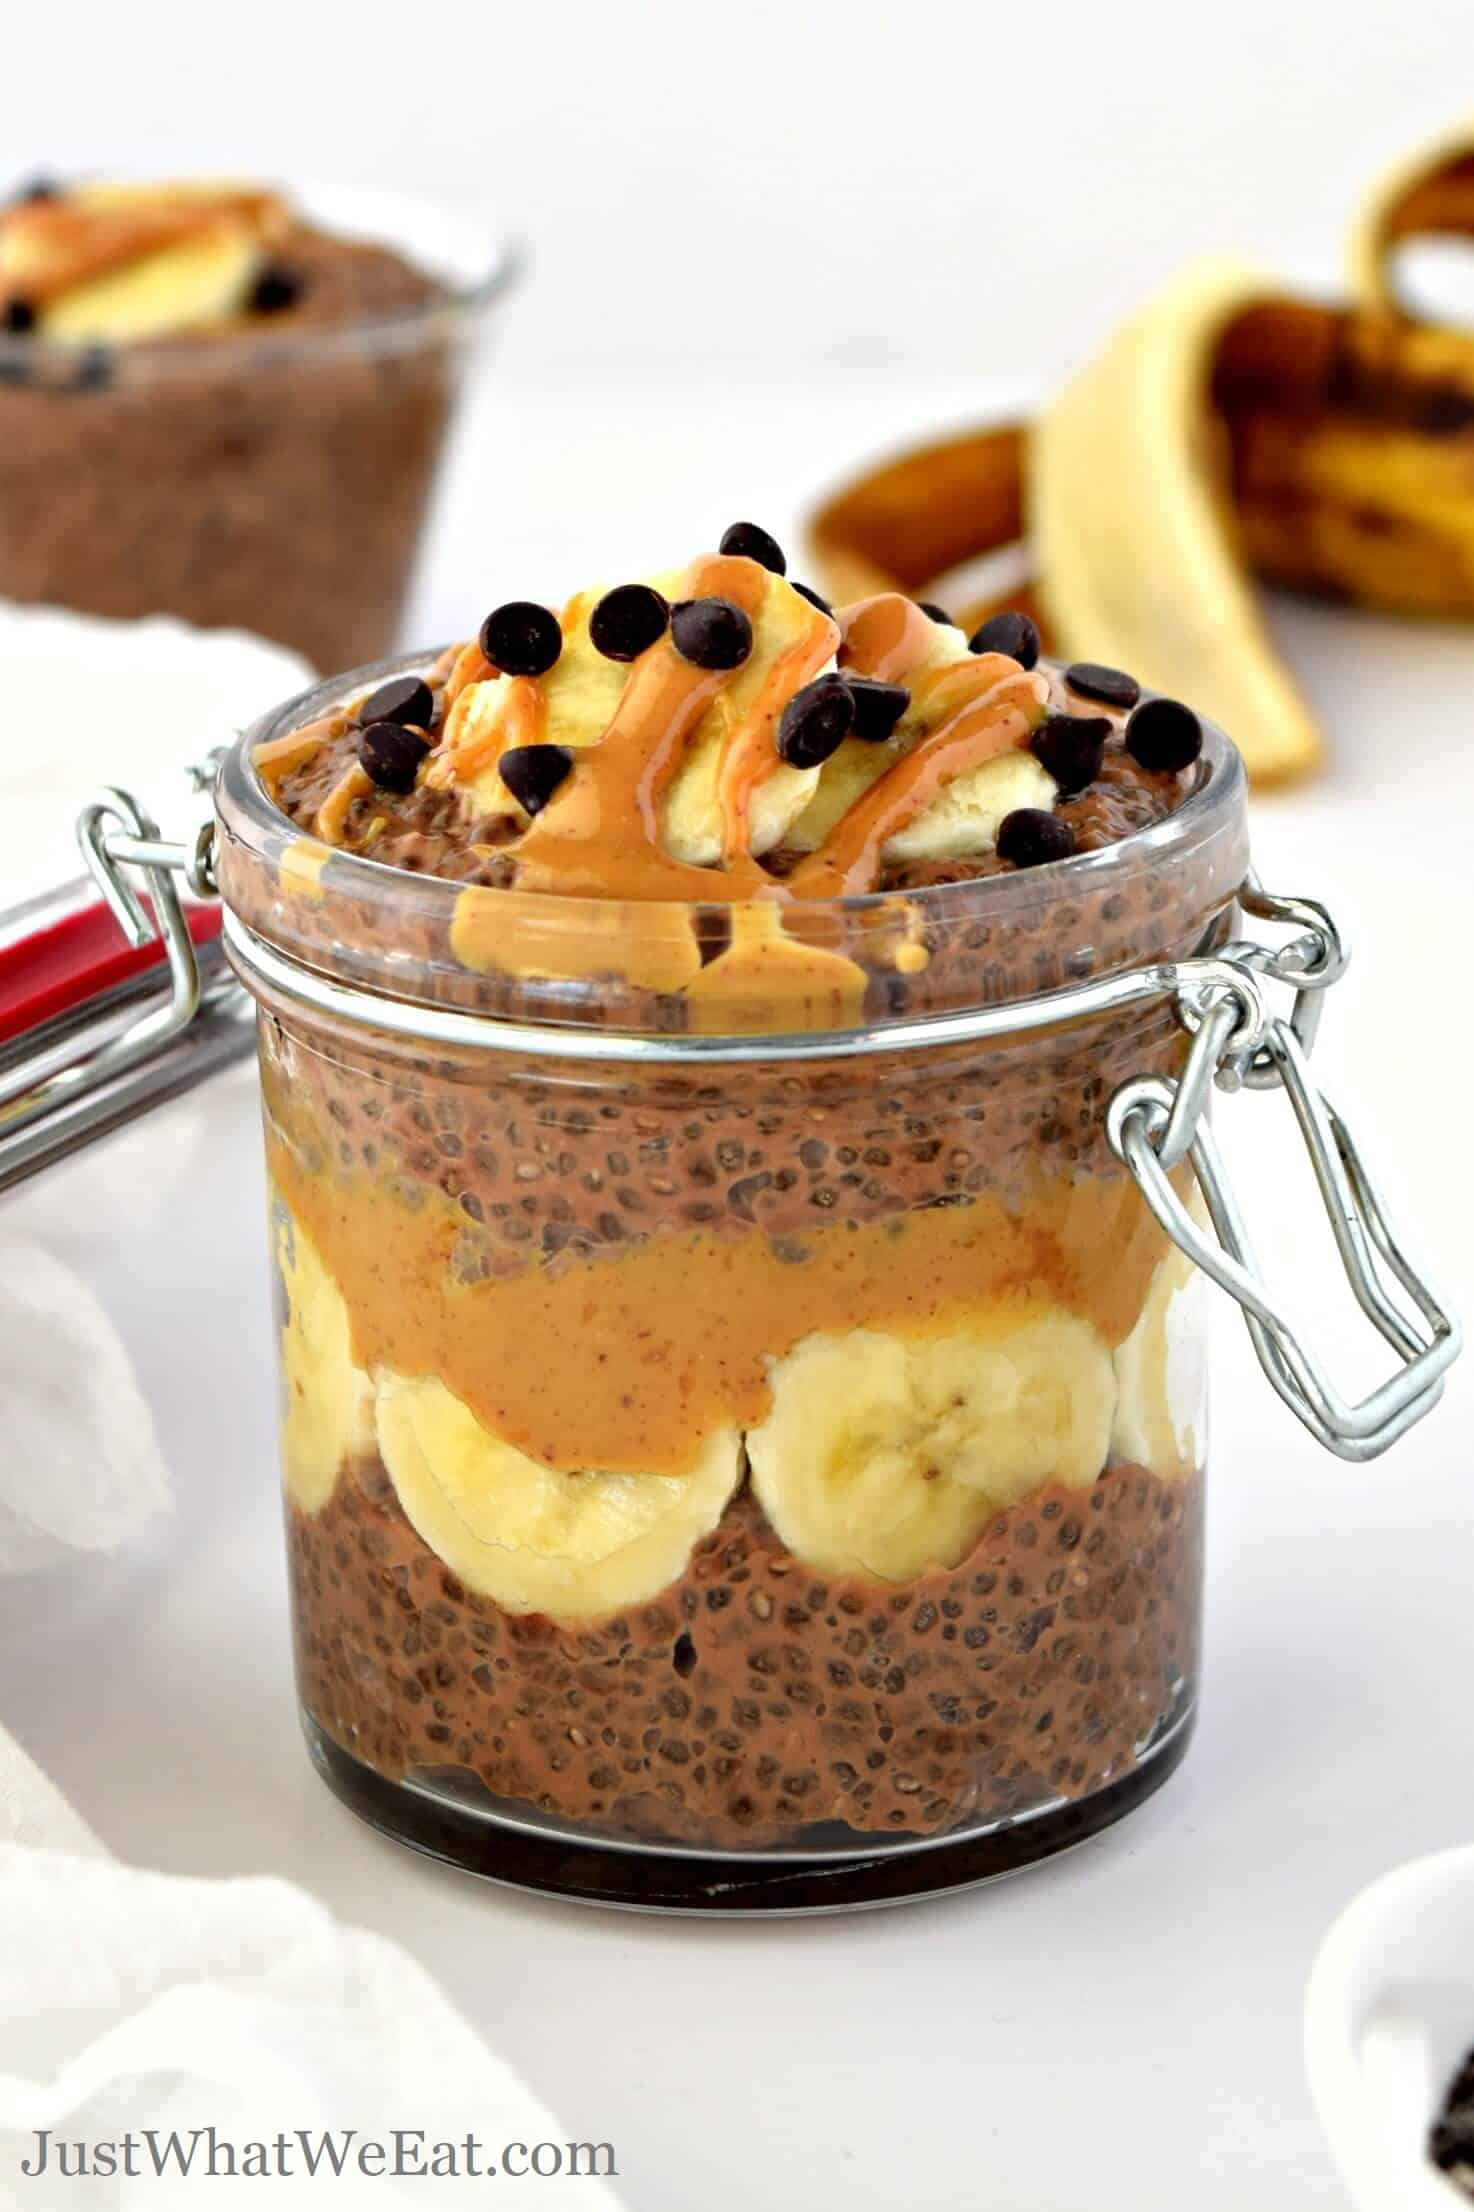 This Chocolate Peanut Butter and Banana Chia Pudding recipe is so delicious and takes about 5 minutes to prep! It's gluten free, vegan, and makes a perfect healthy snack or breakfast!